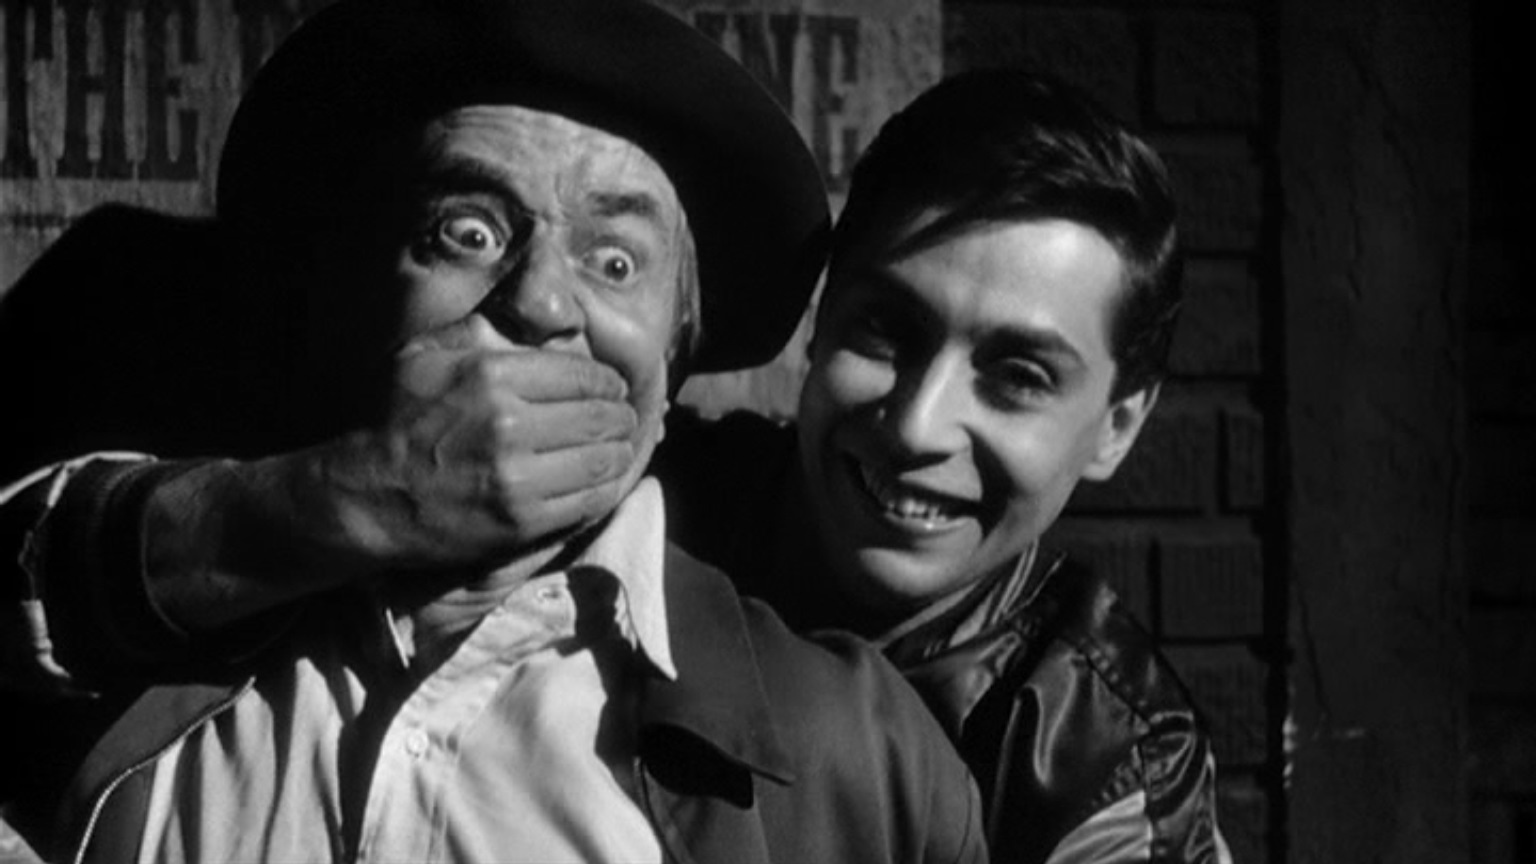 Malcolm Atterbury and Mark Rydell in Crime in the Streets (1956)